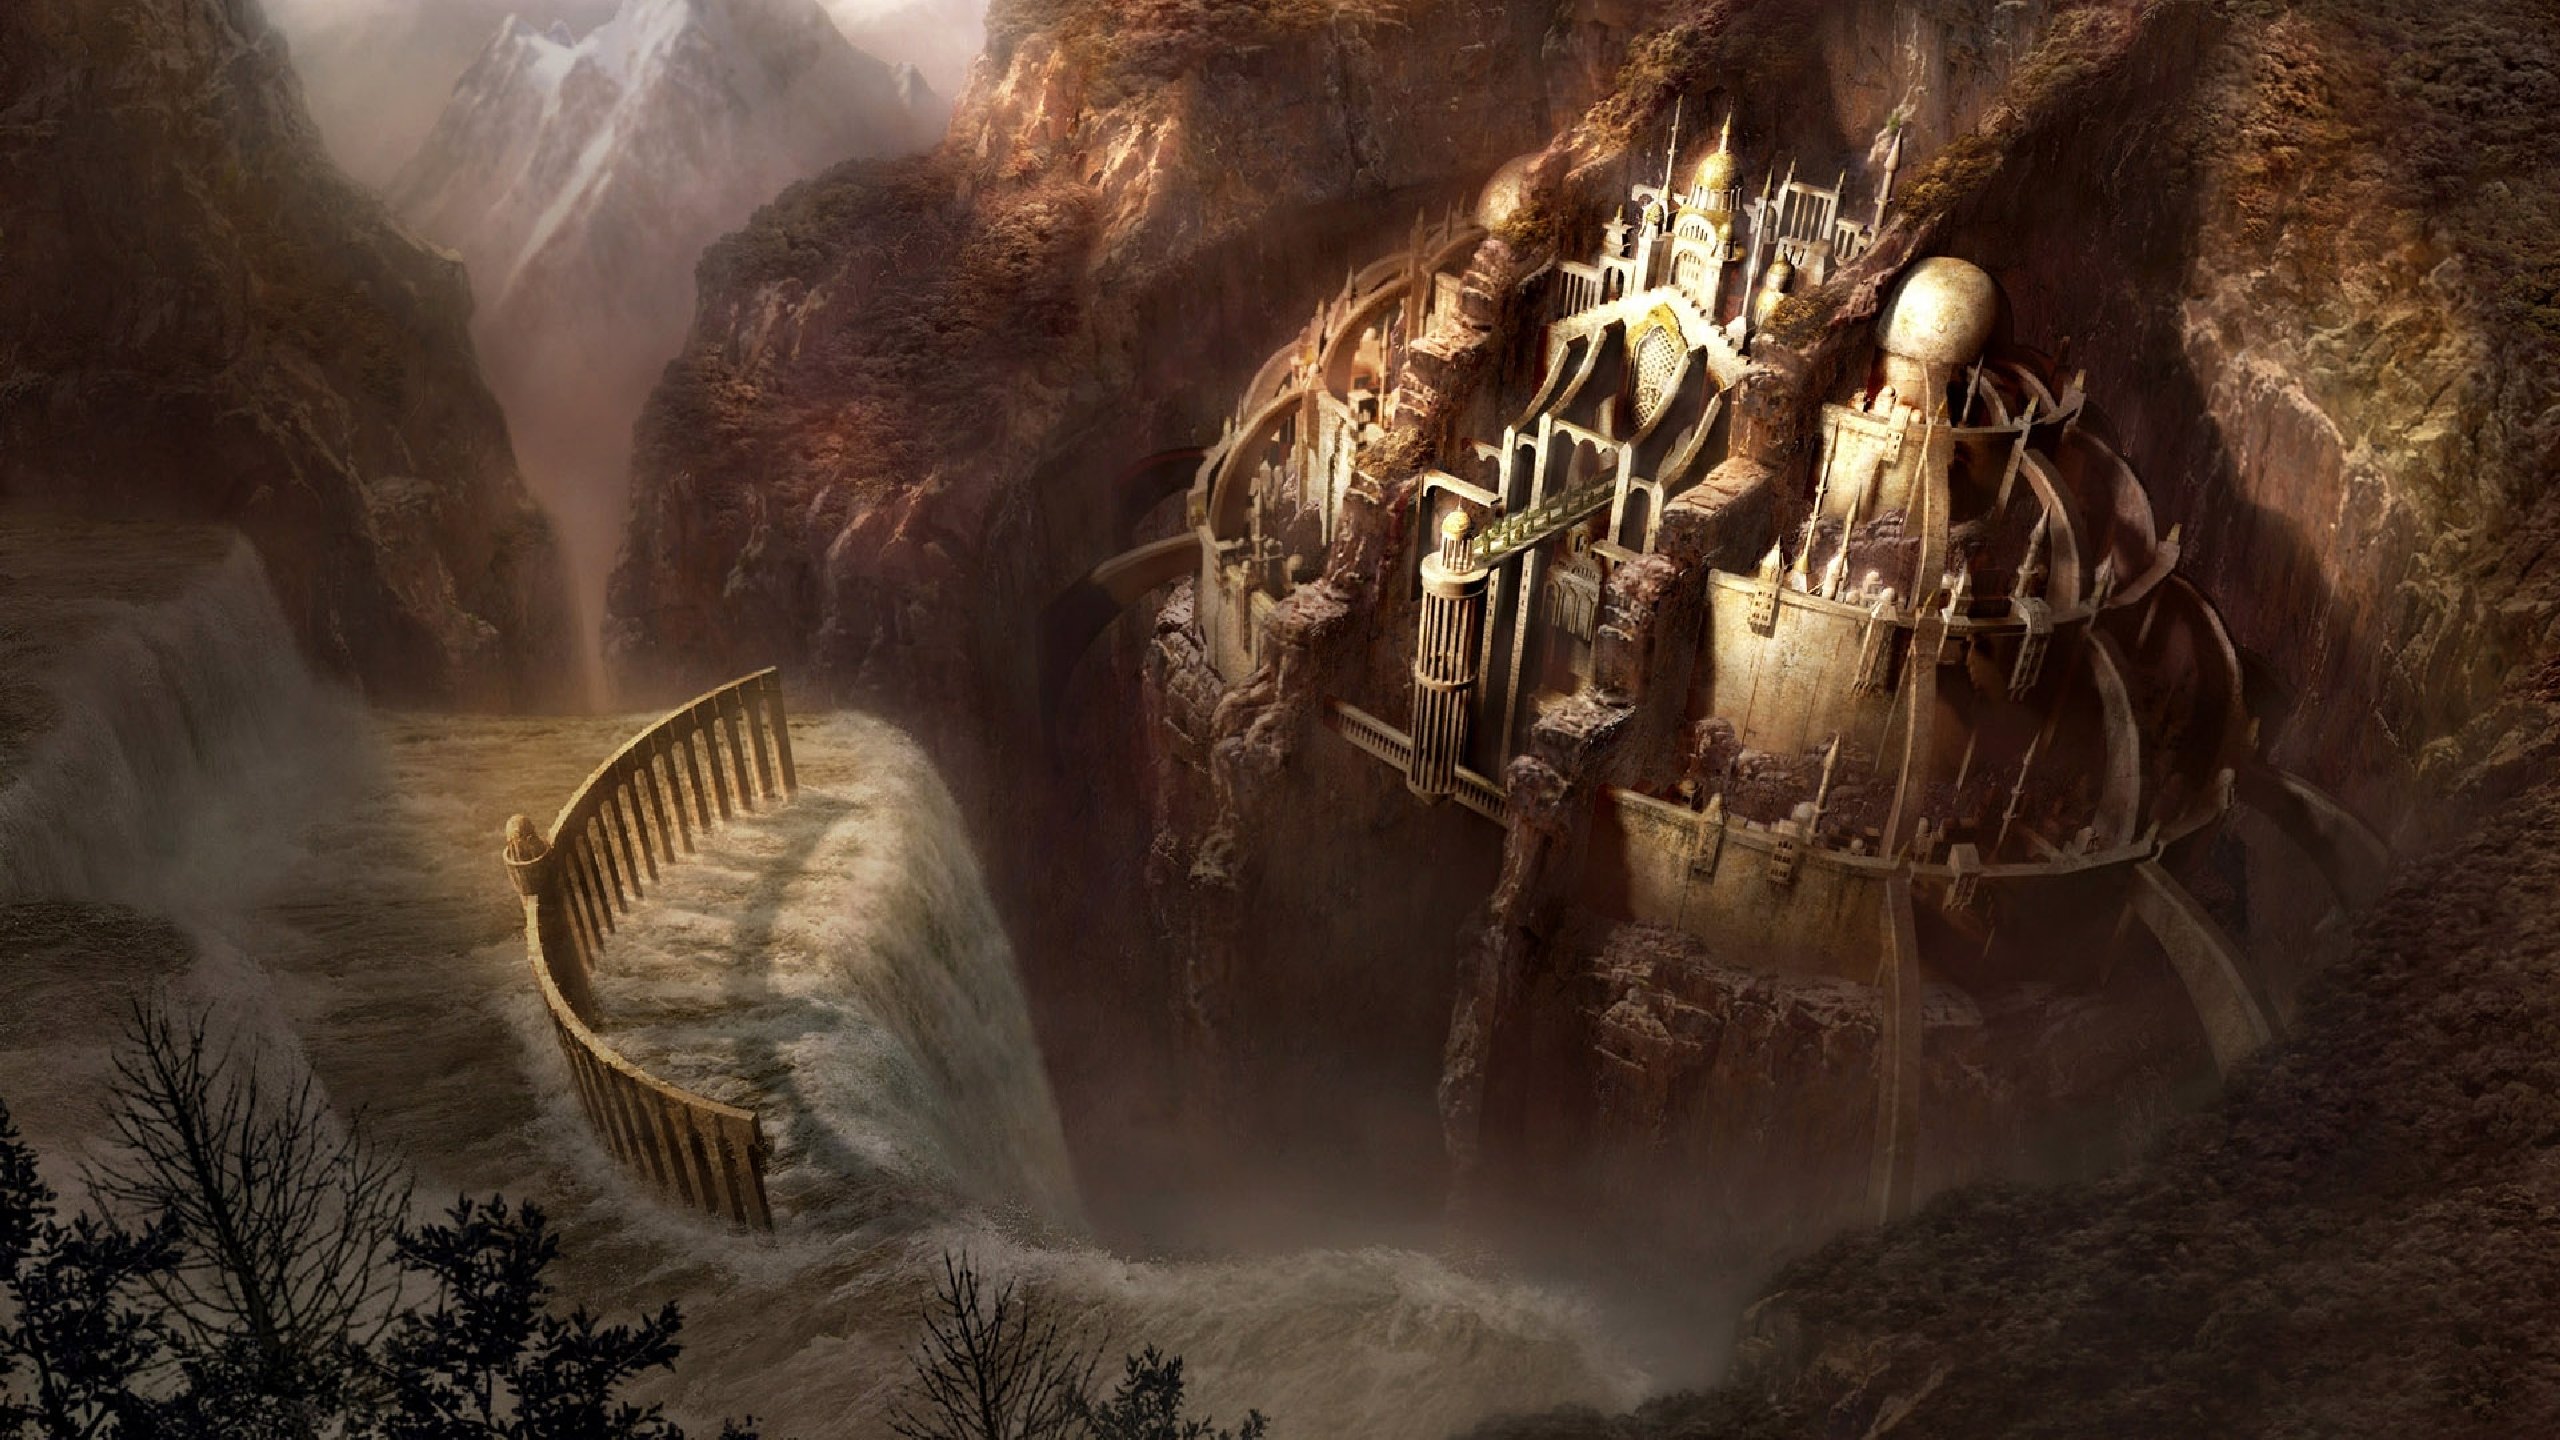 City hd wallpaper background image 2560x1440 id 325624 wallpaper abyss - Epic wallpapers 2560x1440 ...